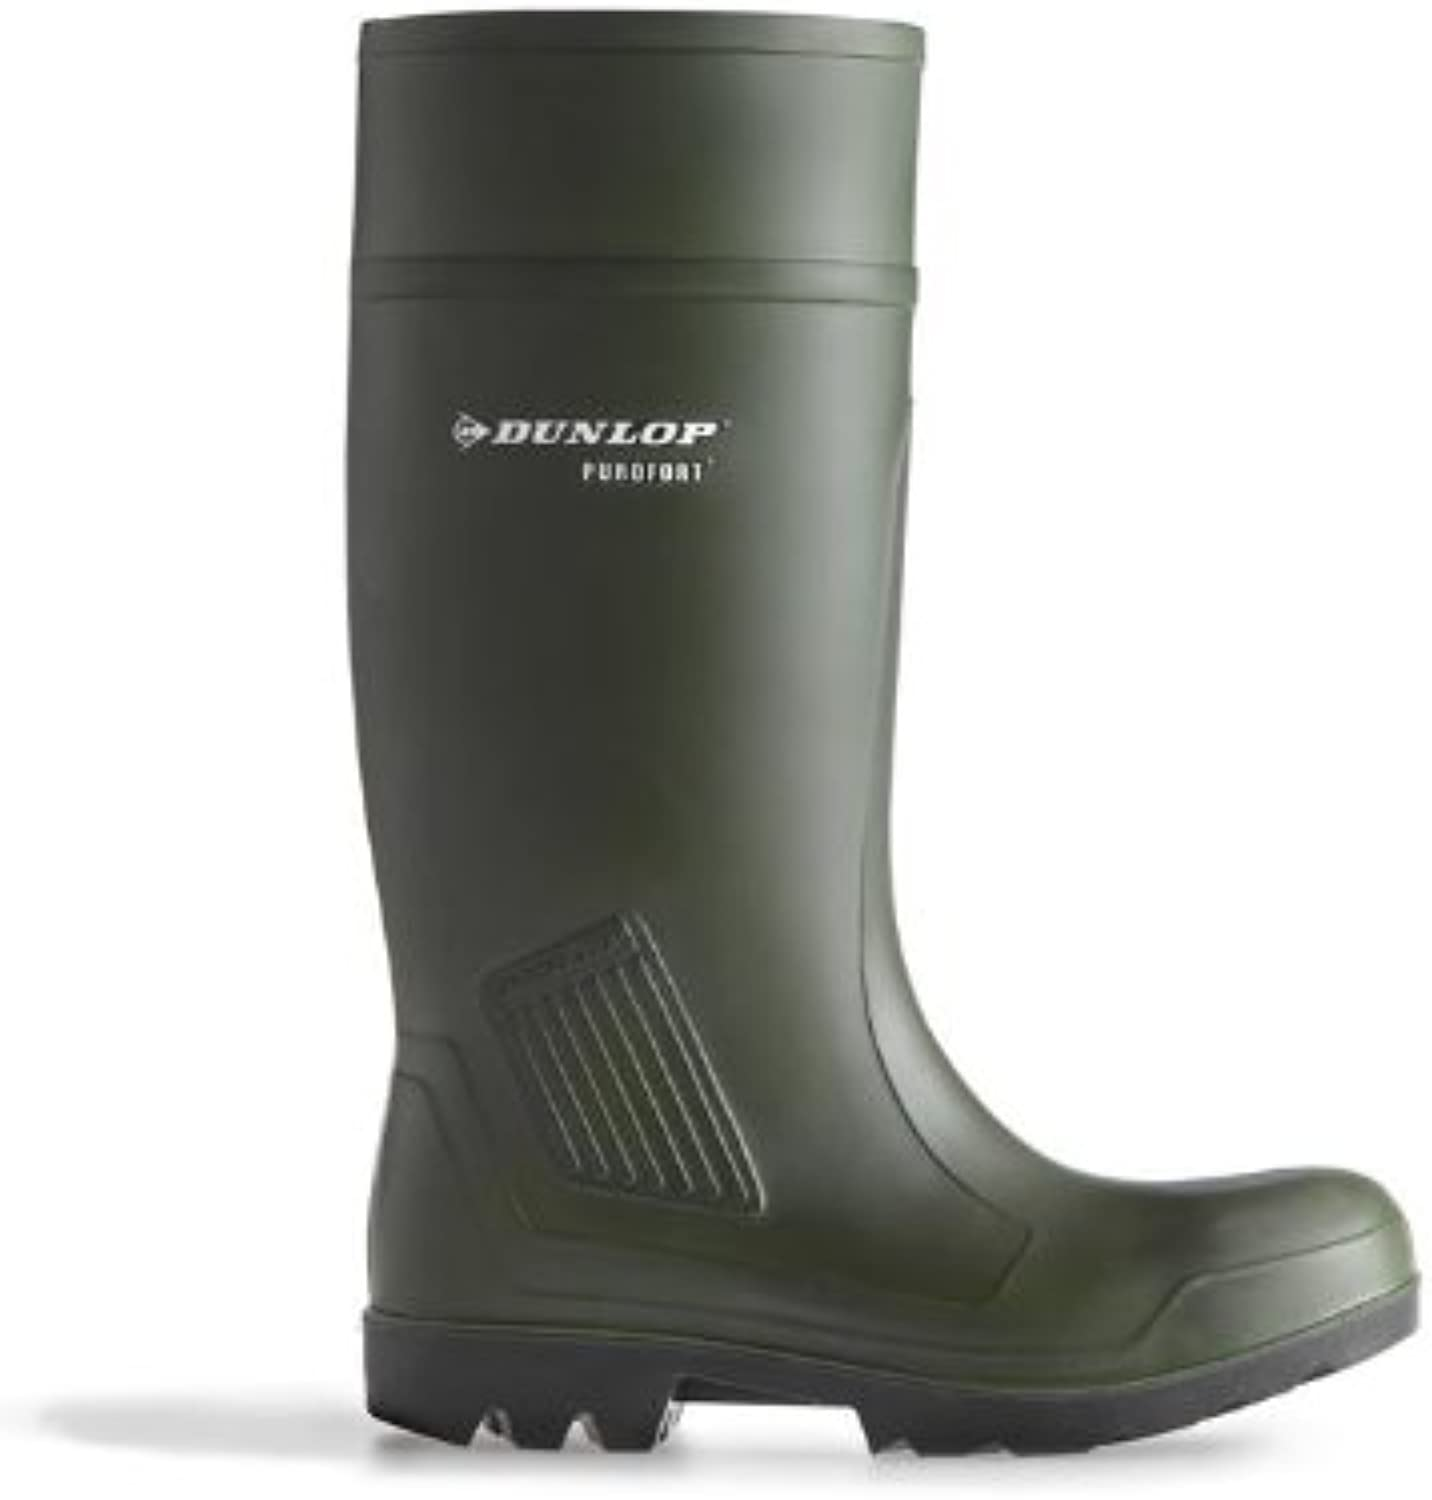 New Dunlop Mens Purofort Professional Safety C462933 Boxed Wellington Gents Boot